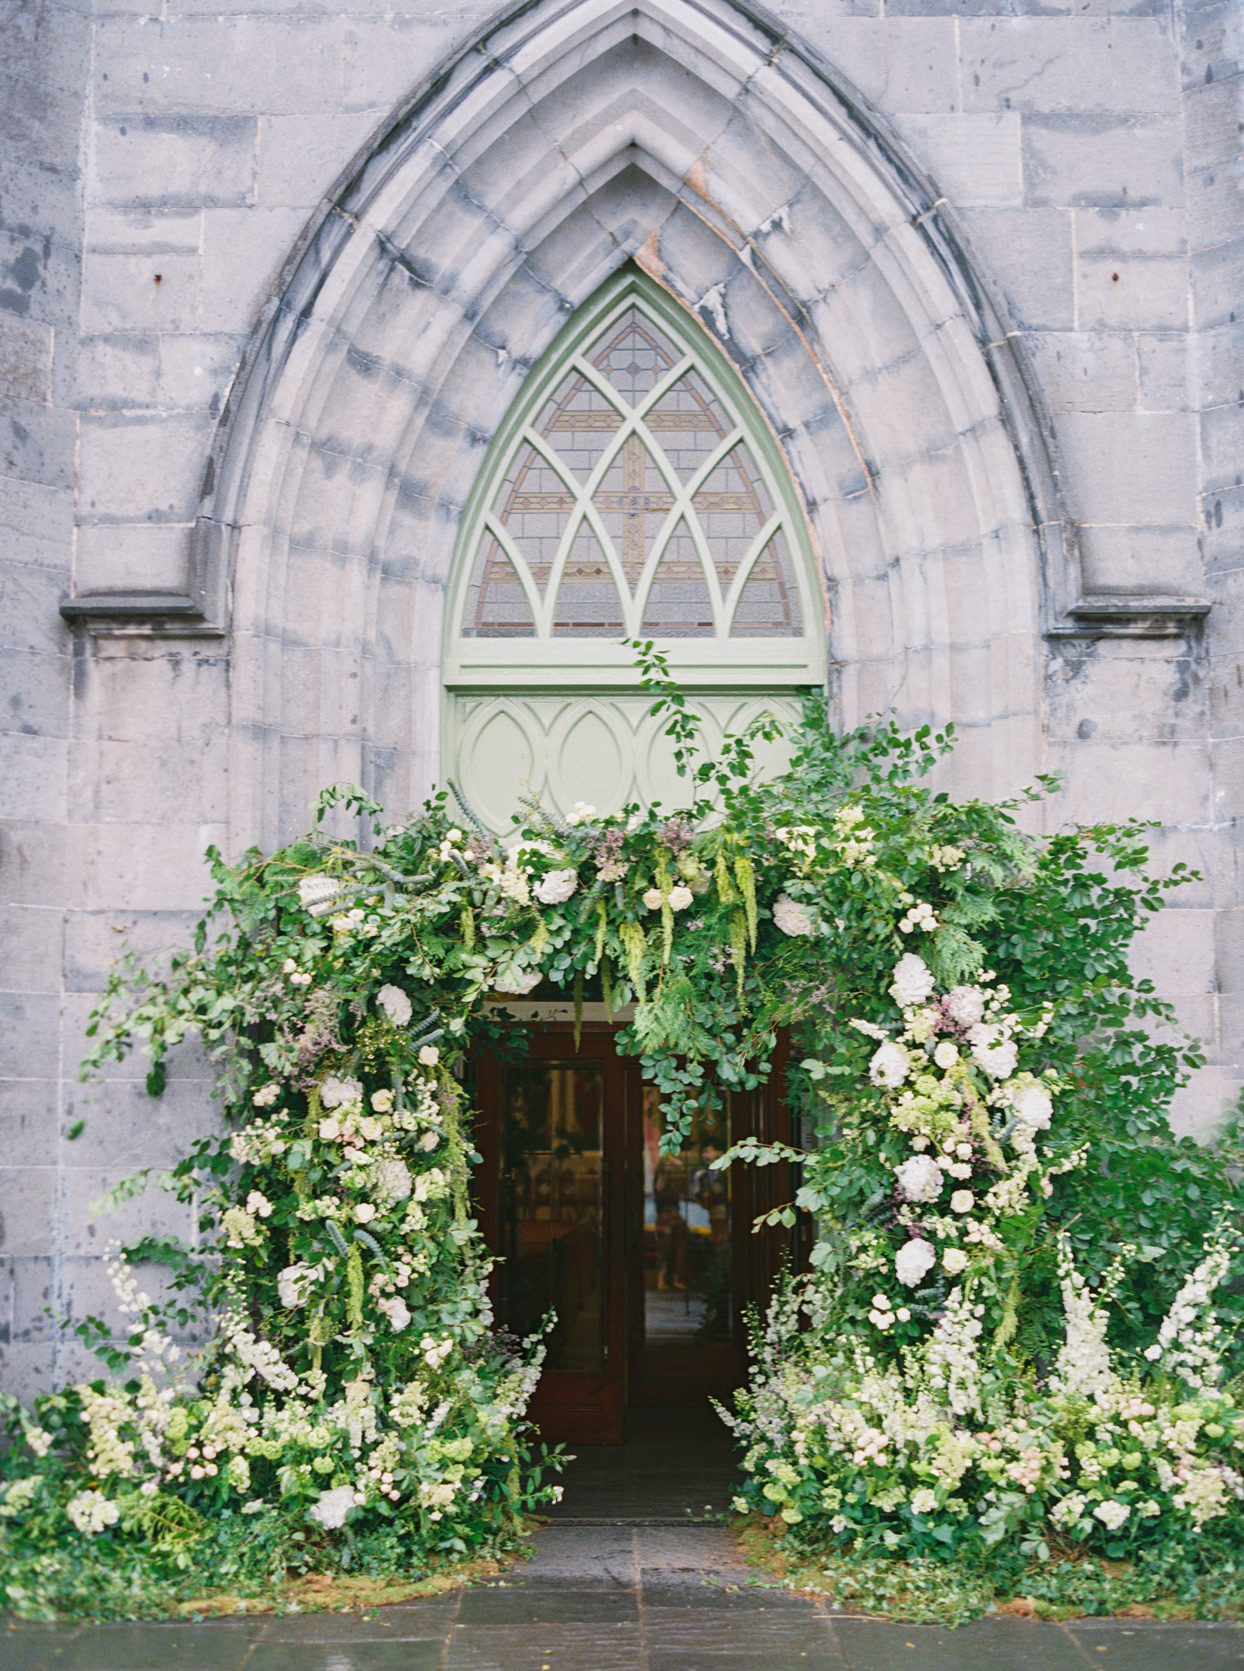 Ennis Cathedral front entry covered in greenery and floral arch